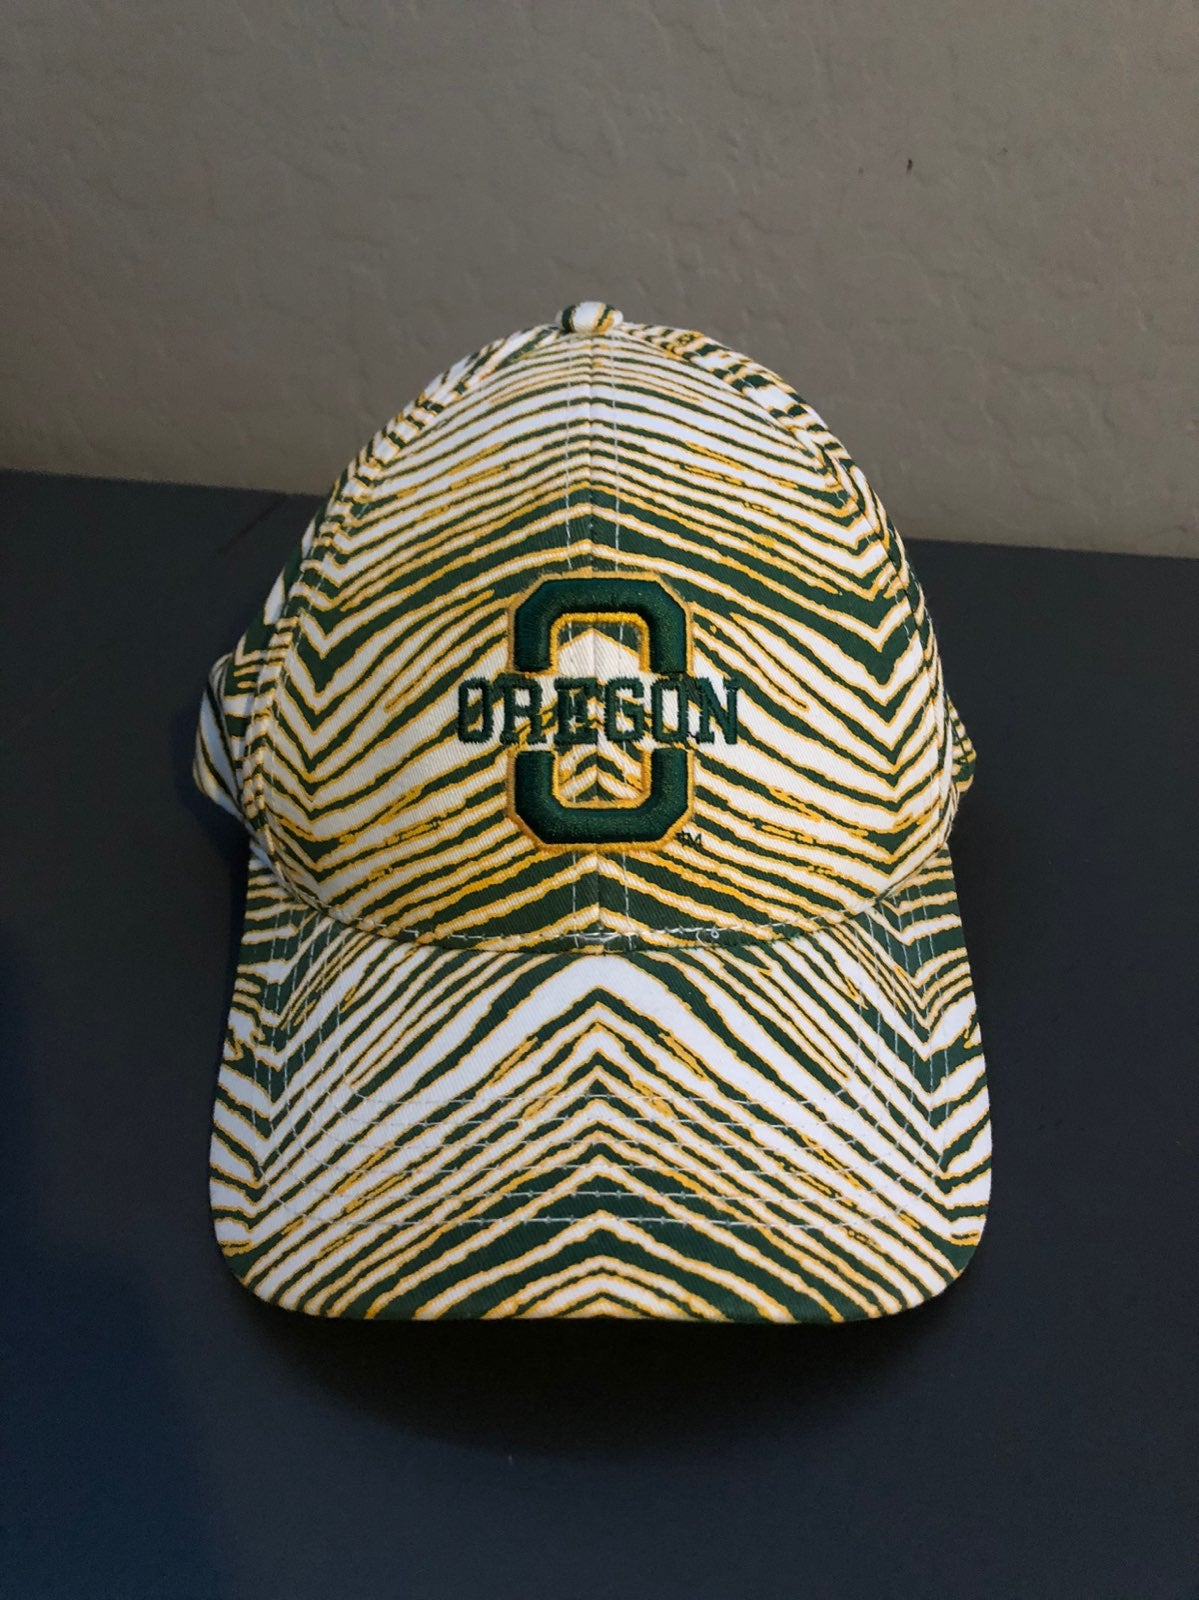 Vintage oregon hat